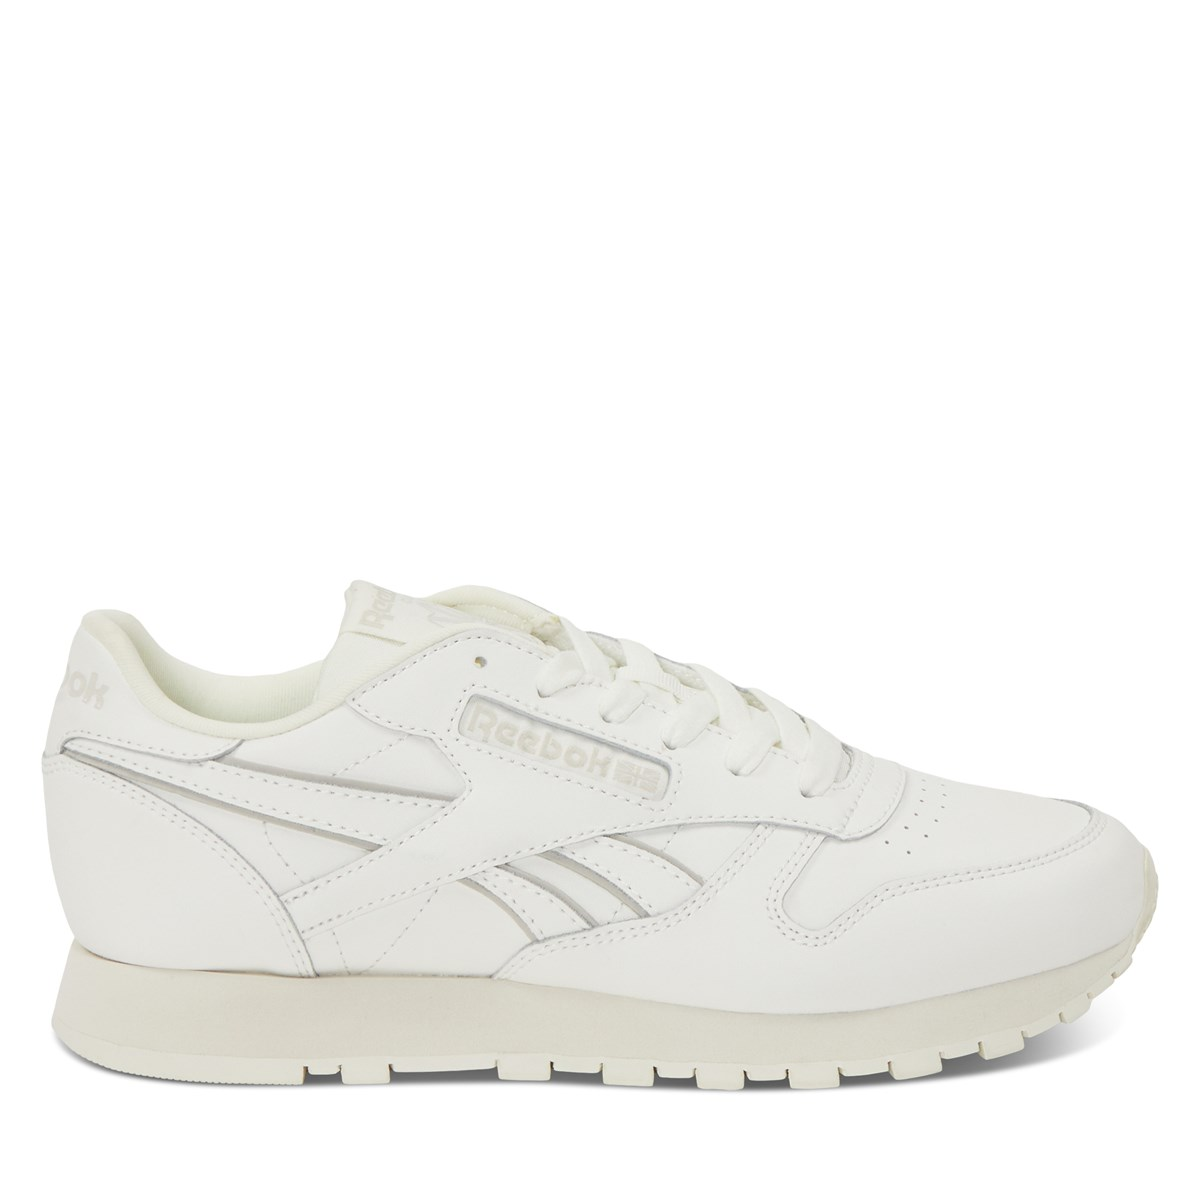 Women's Classic Leather Sneakers in Chalk